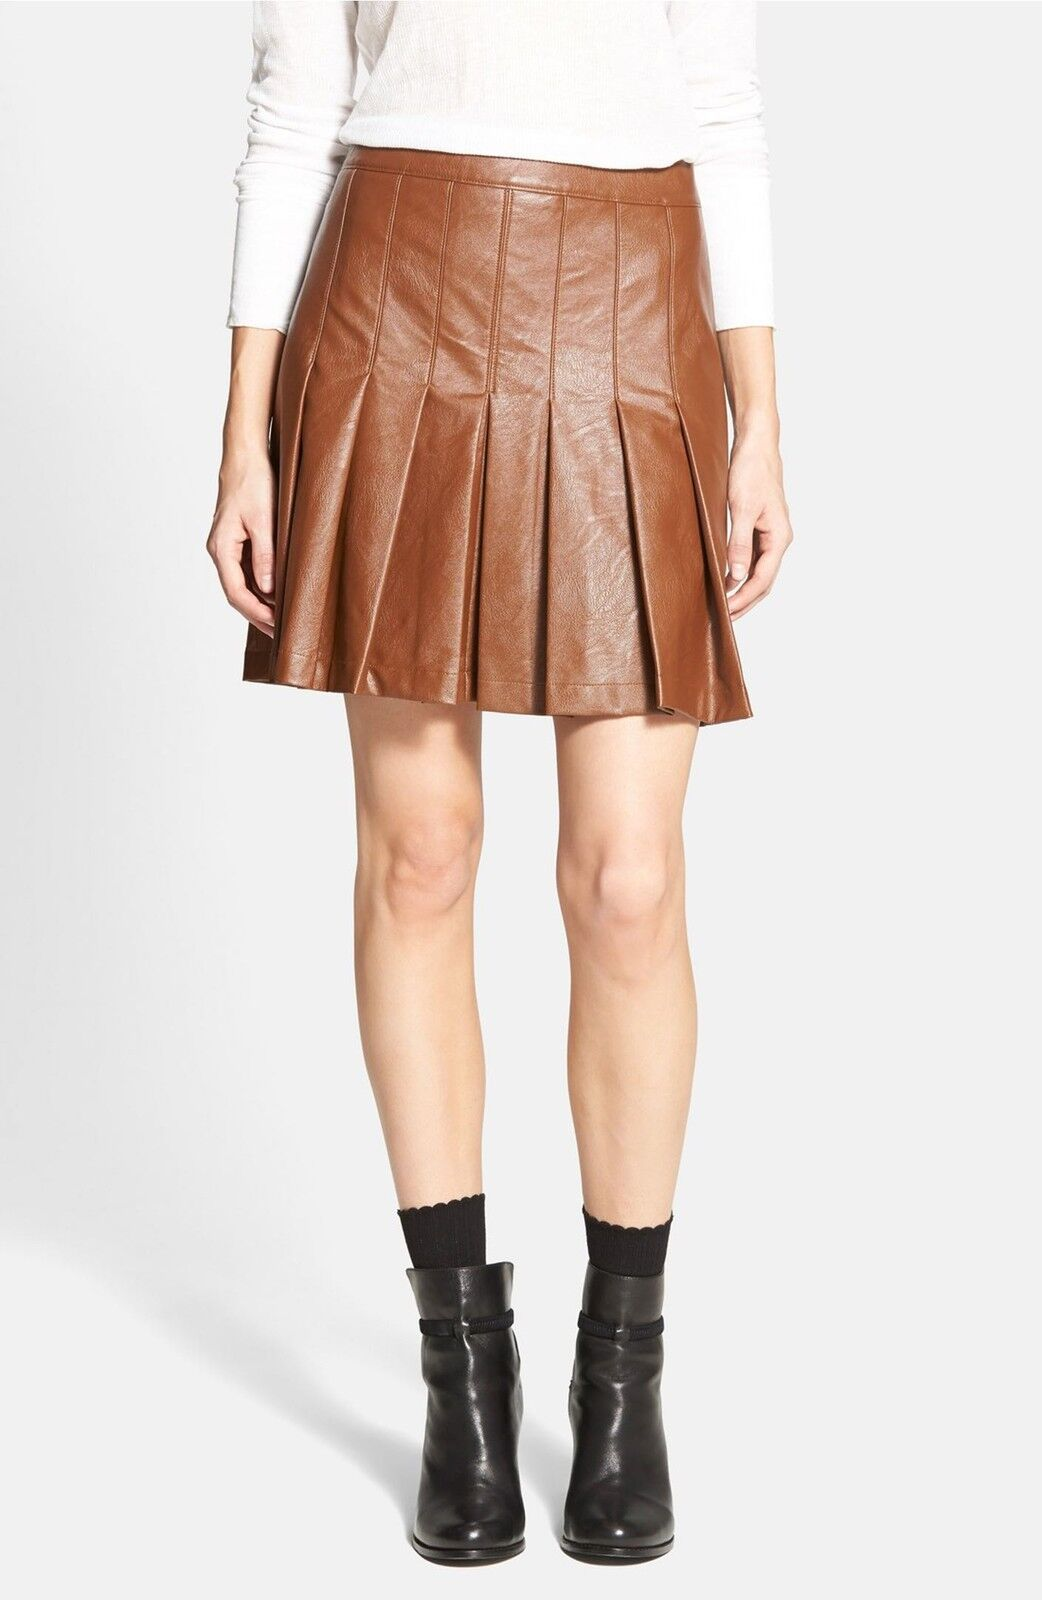 NWT  245 Ace Delivery Pleated Faux Leder Skirt | SZ M | A065